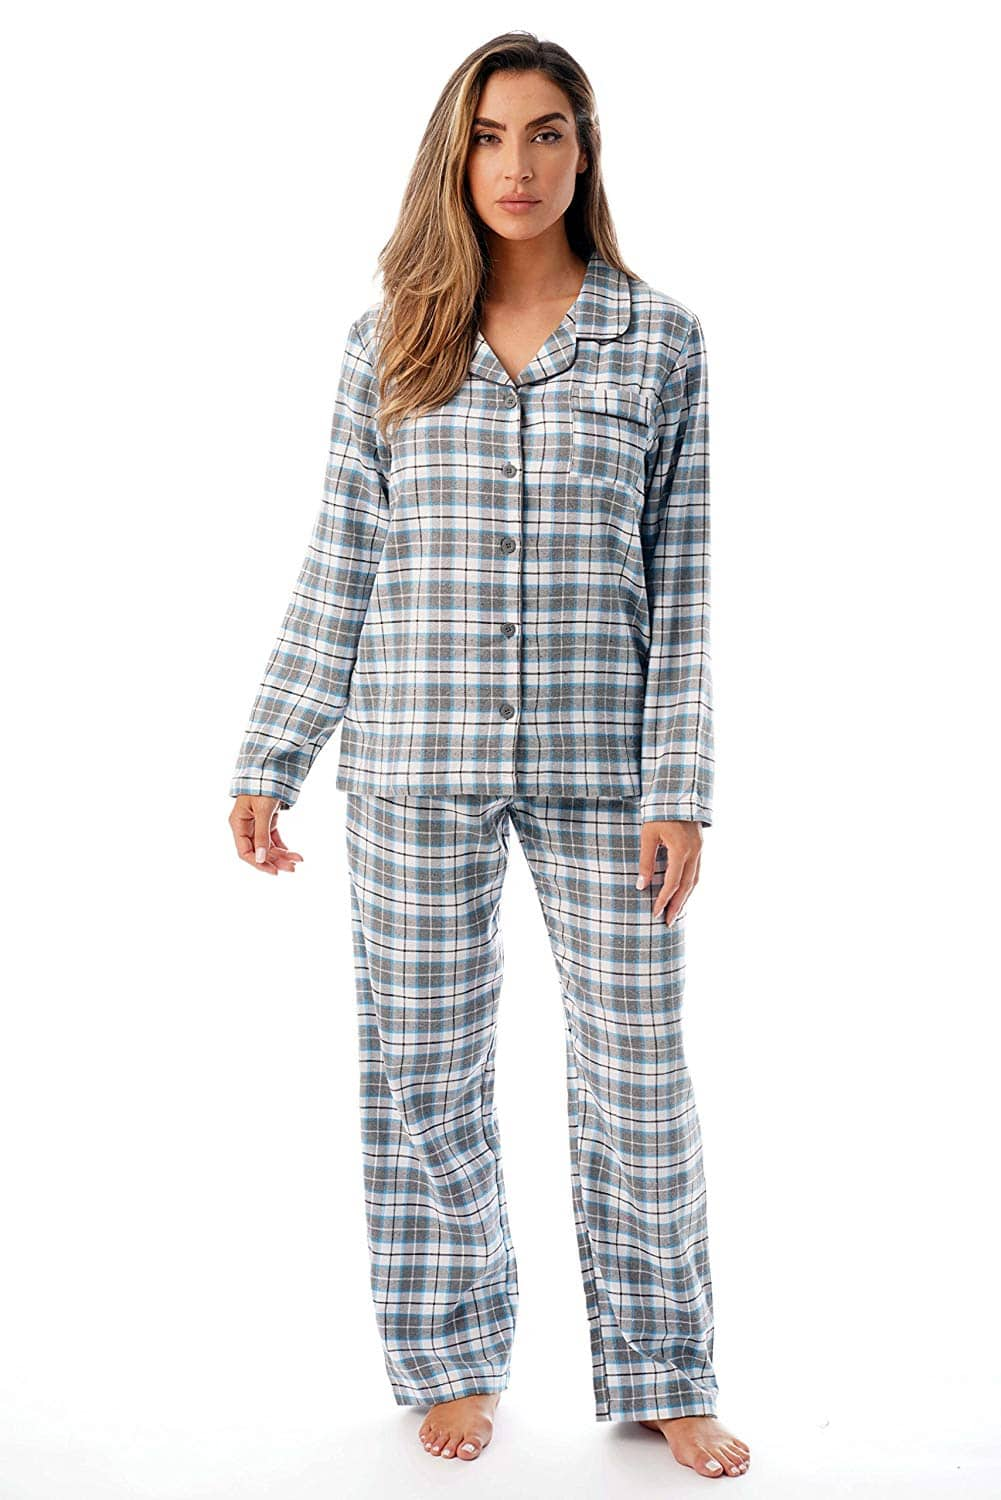 Just Love Long Sleeve Flannel Pajama Sets for Women